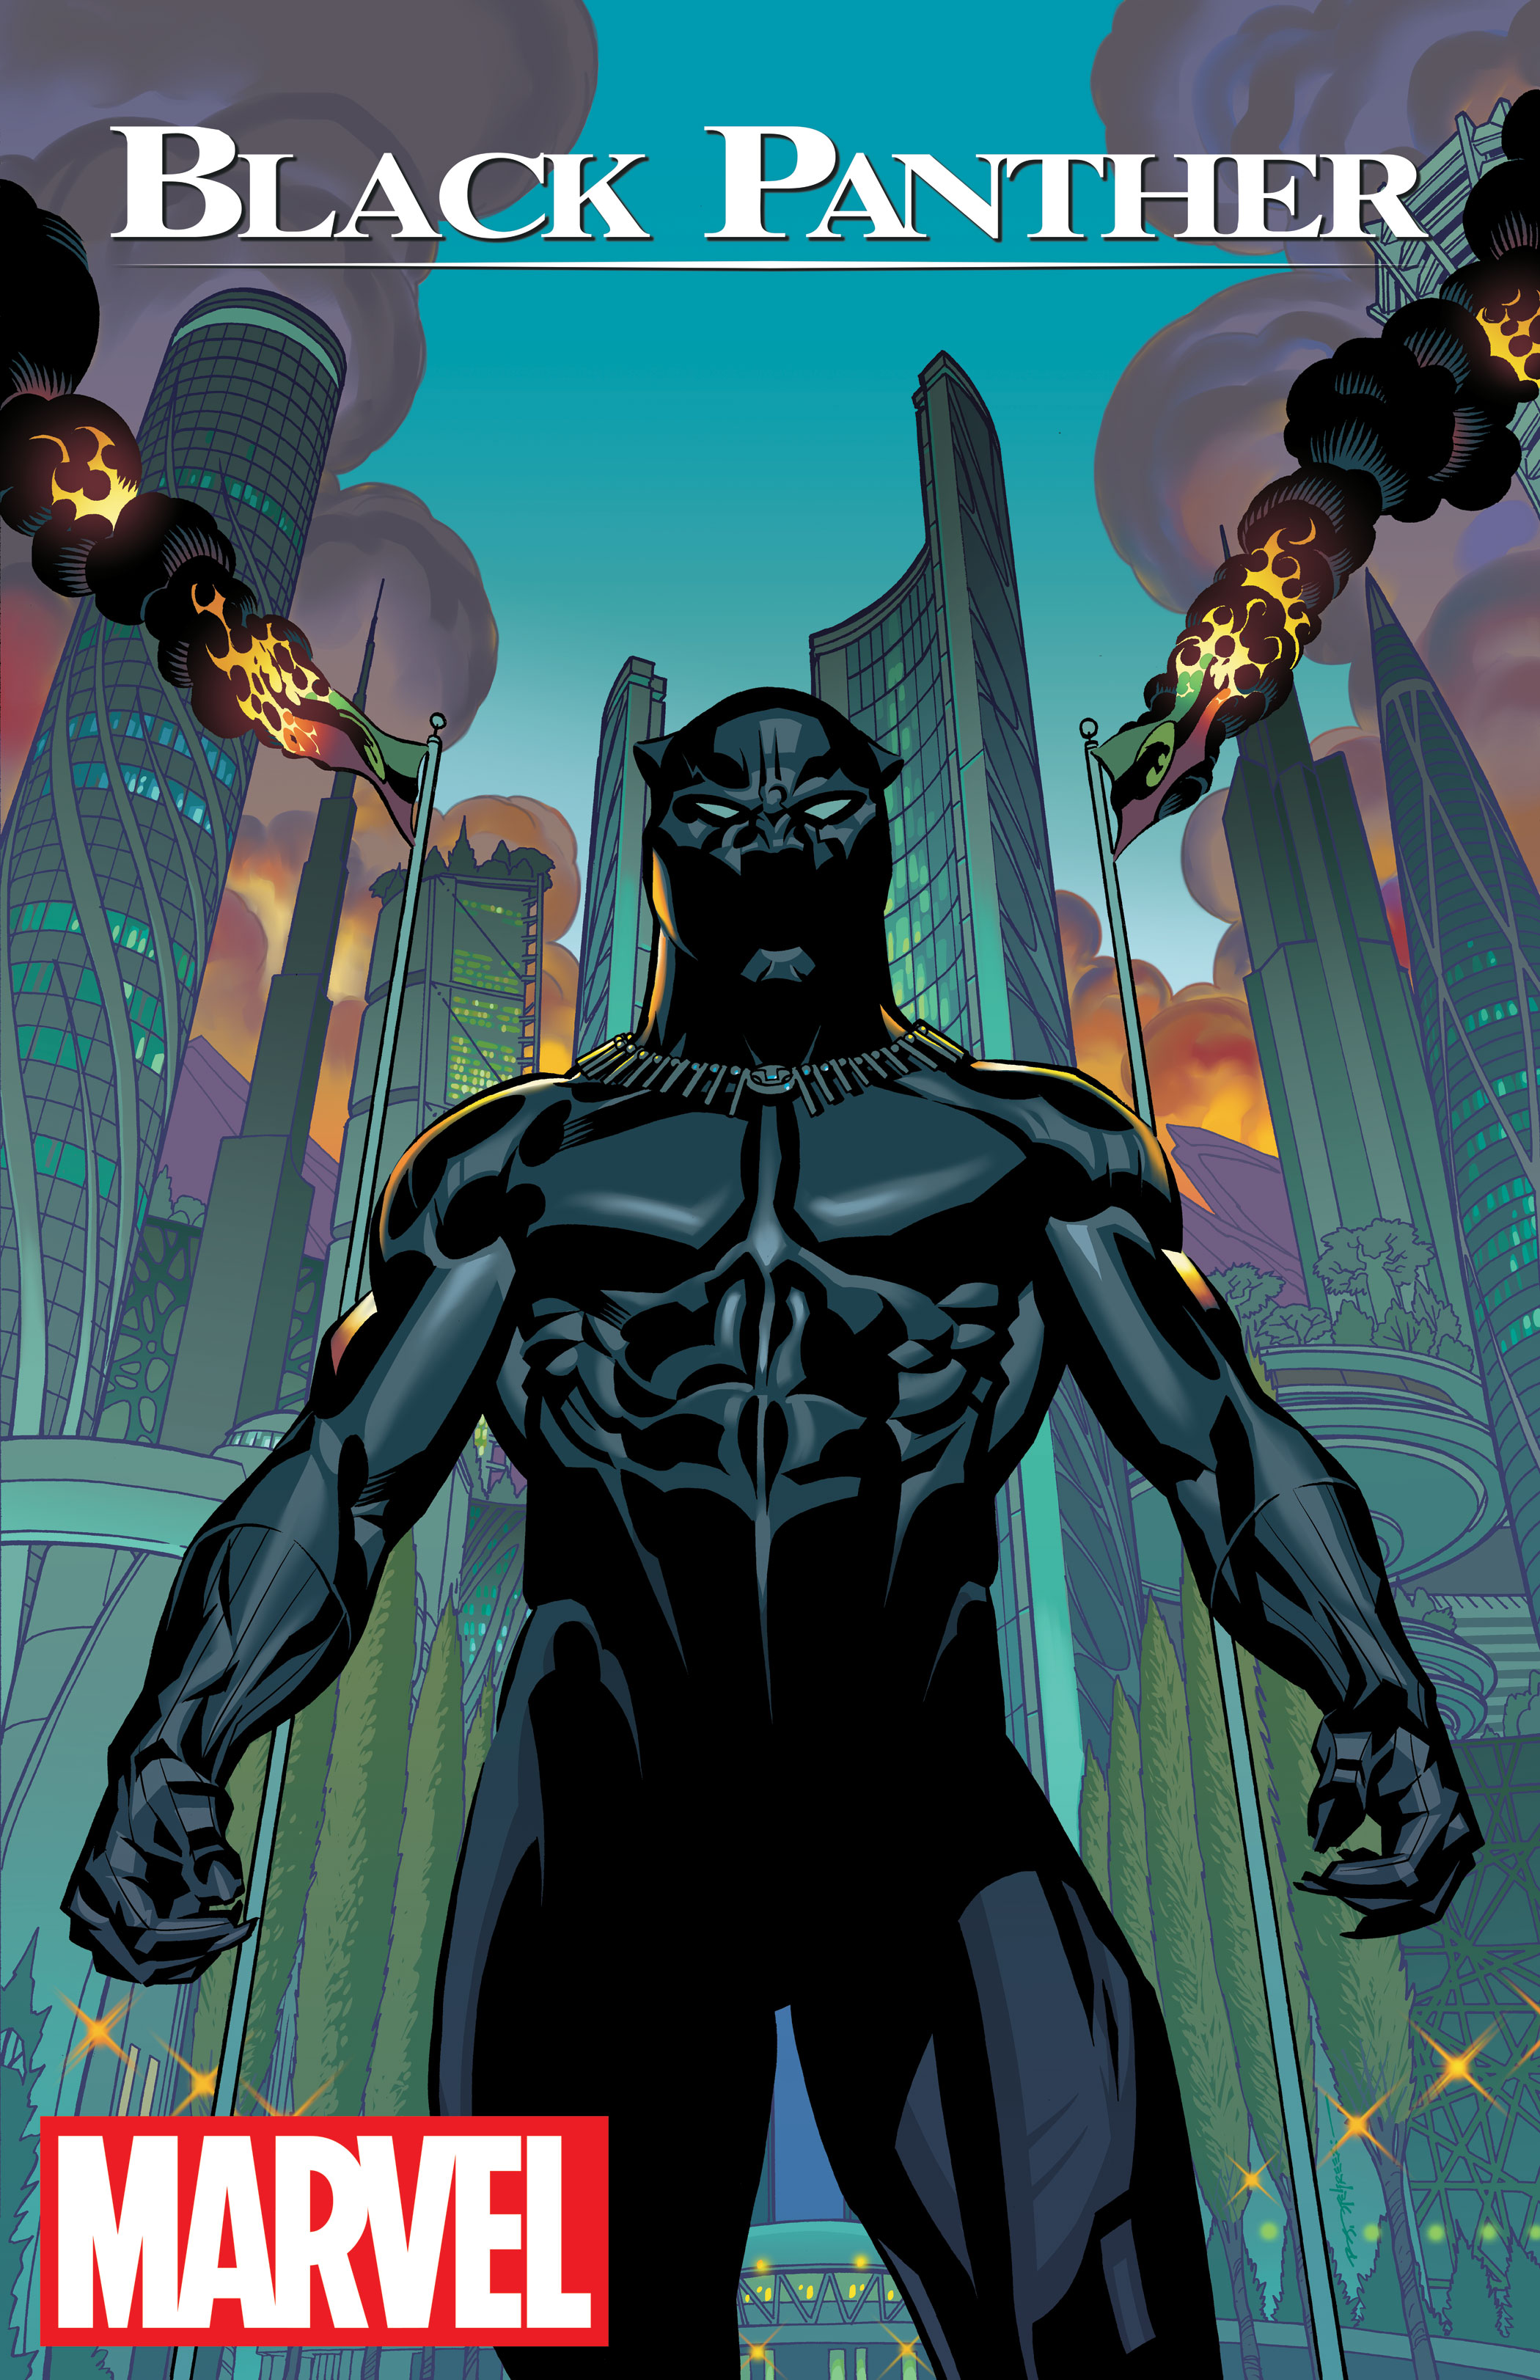 Black Panther No. 1 Cover drawn by Brian Stelfreeze